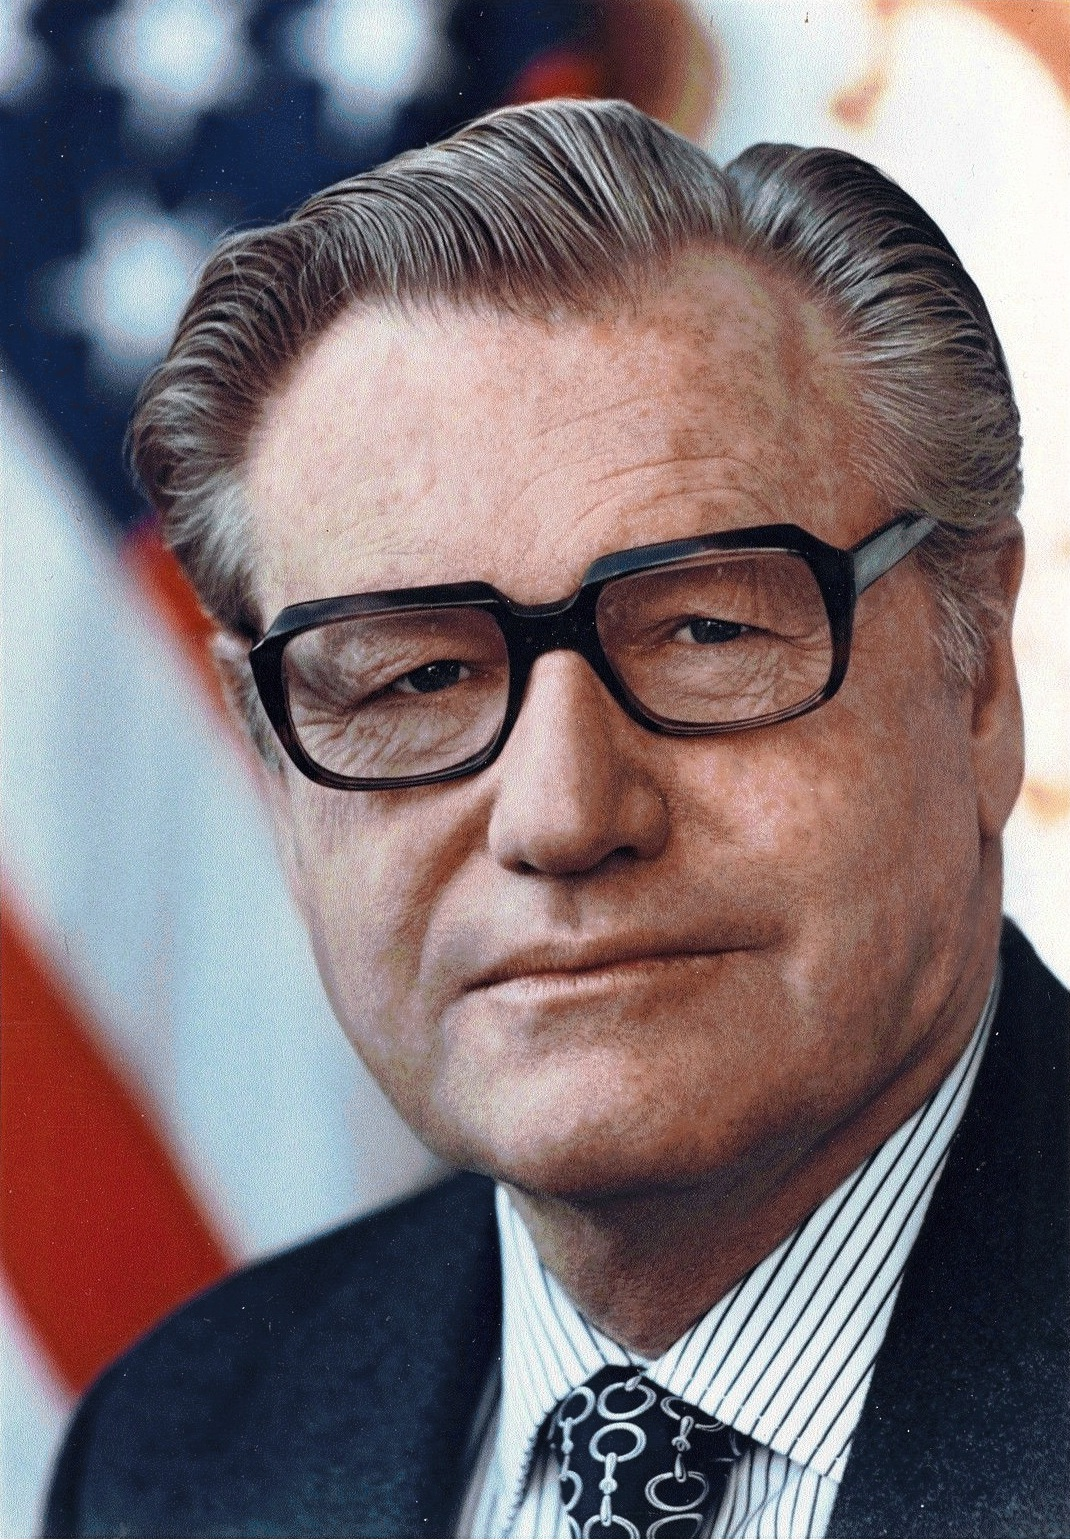 "//upload.wikimedia.org/wikipedia/commons/5/56/Nelson_Rockefeller.jpg"" cannot be displayed, because it contains errors."